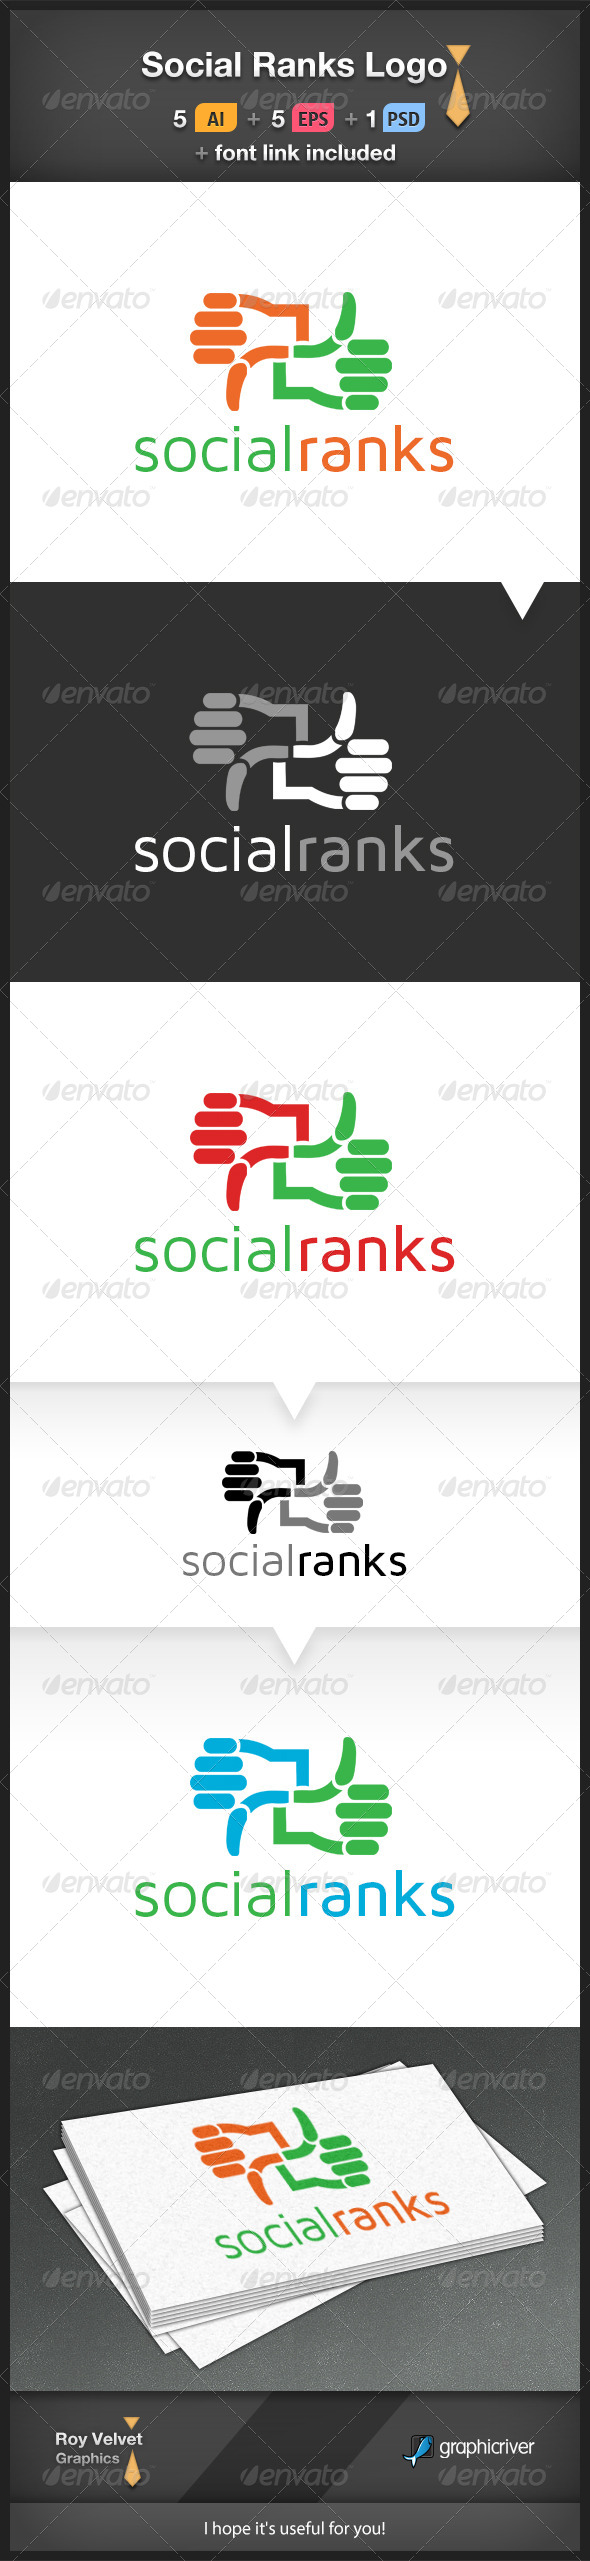 GraphicRiver Social Ranks Logo 6219399